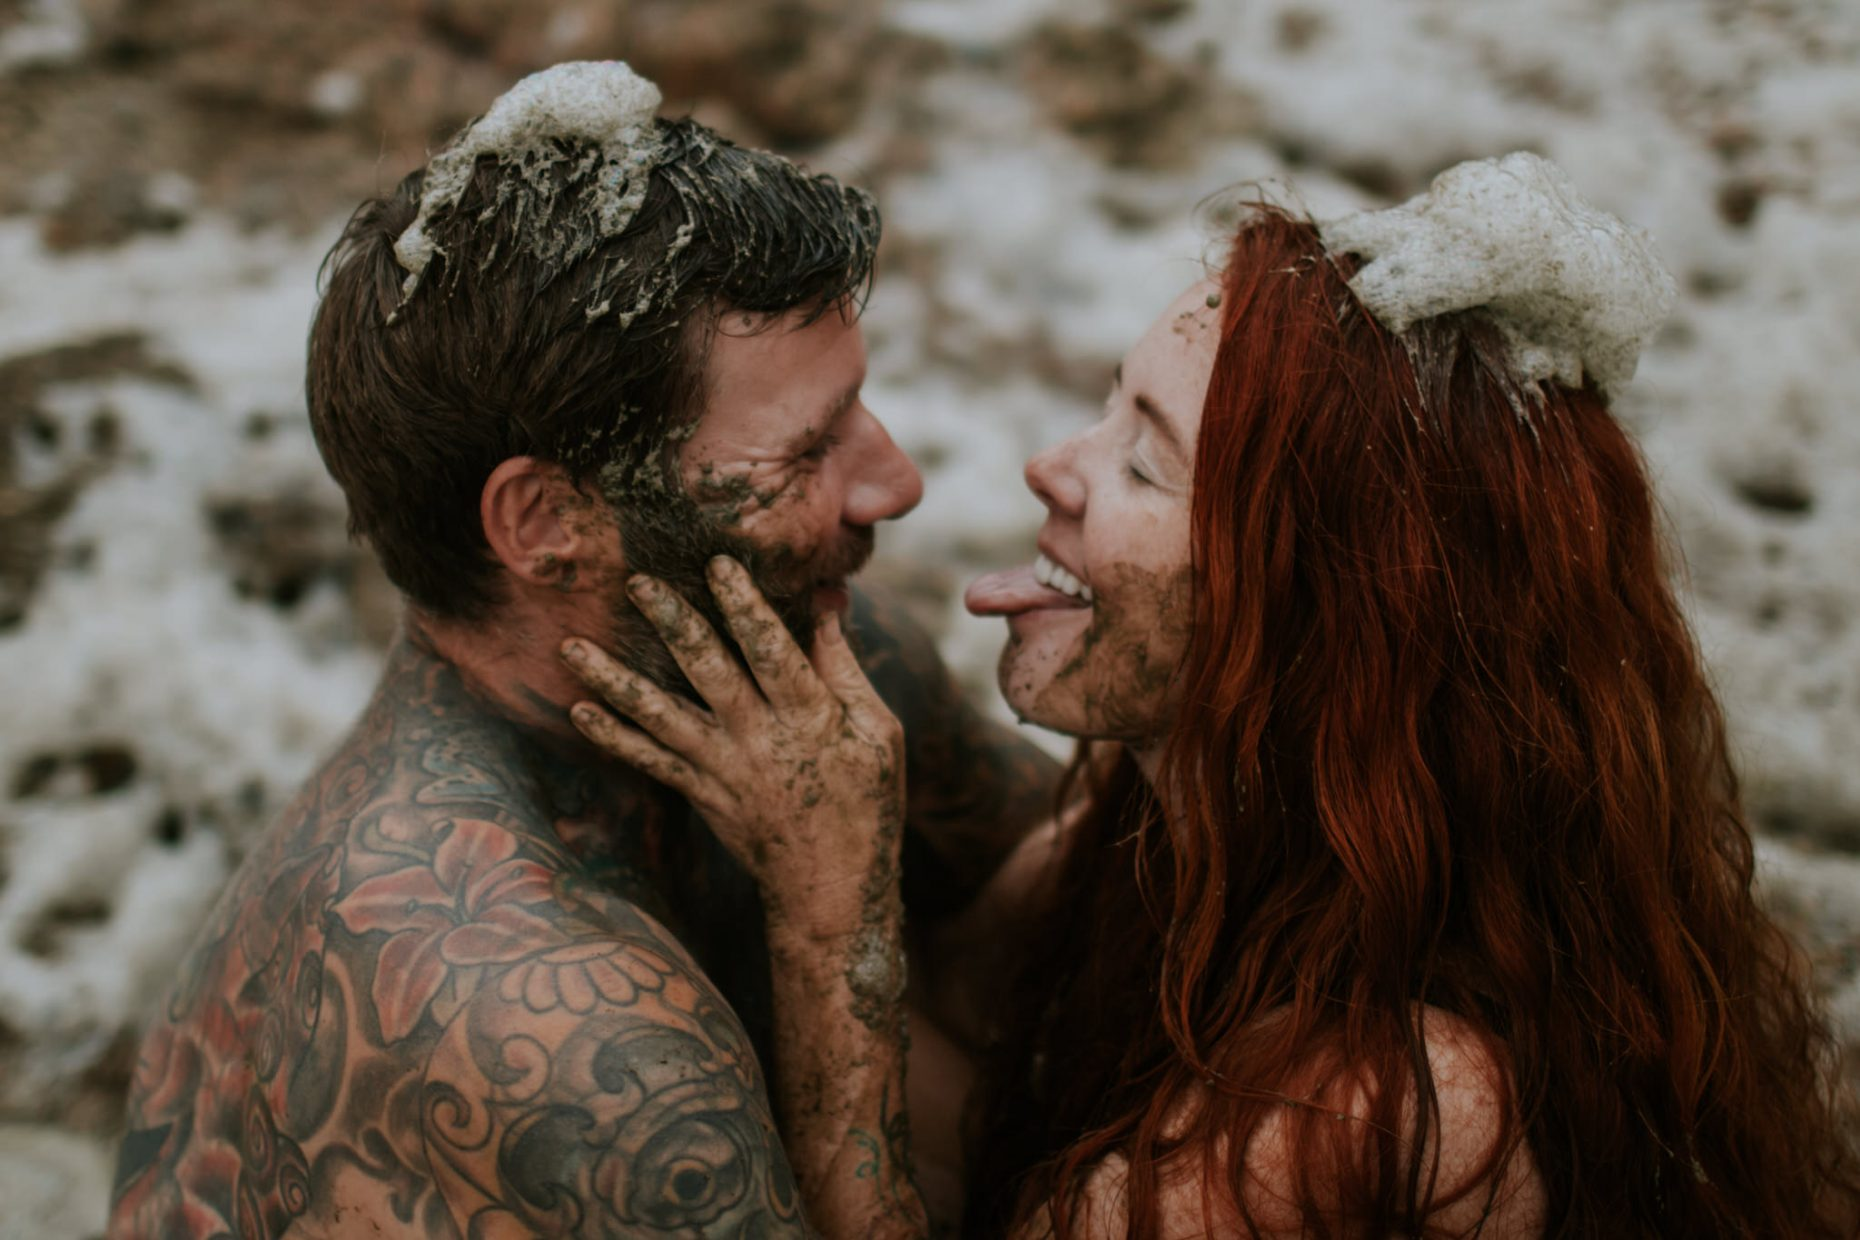 a couple sit close together facing each other covered in sea foam as the woman pokes her tongue out playfully at the man